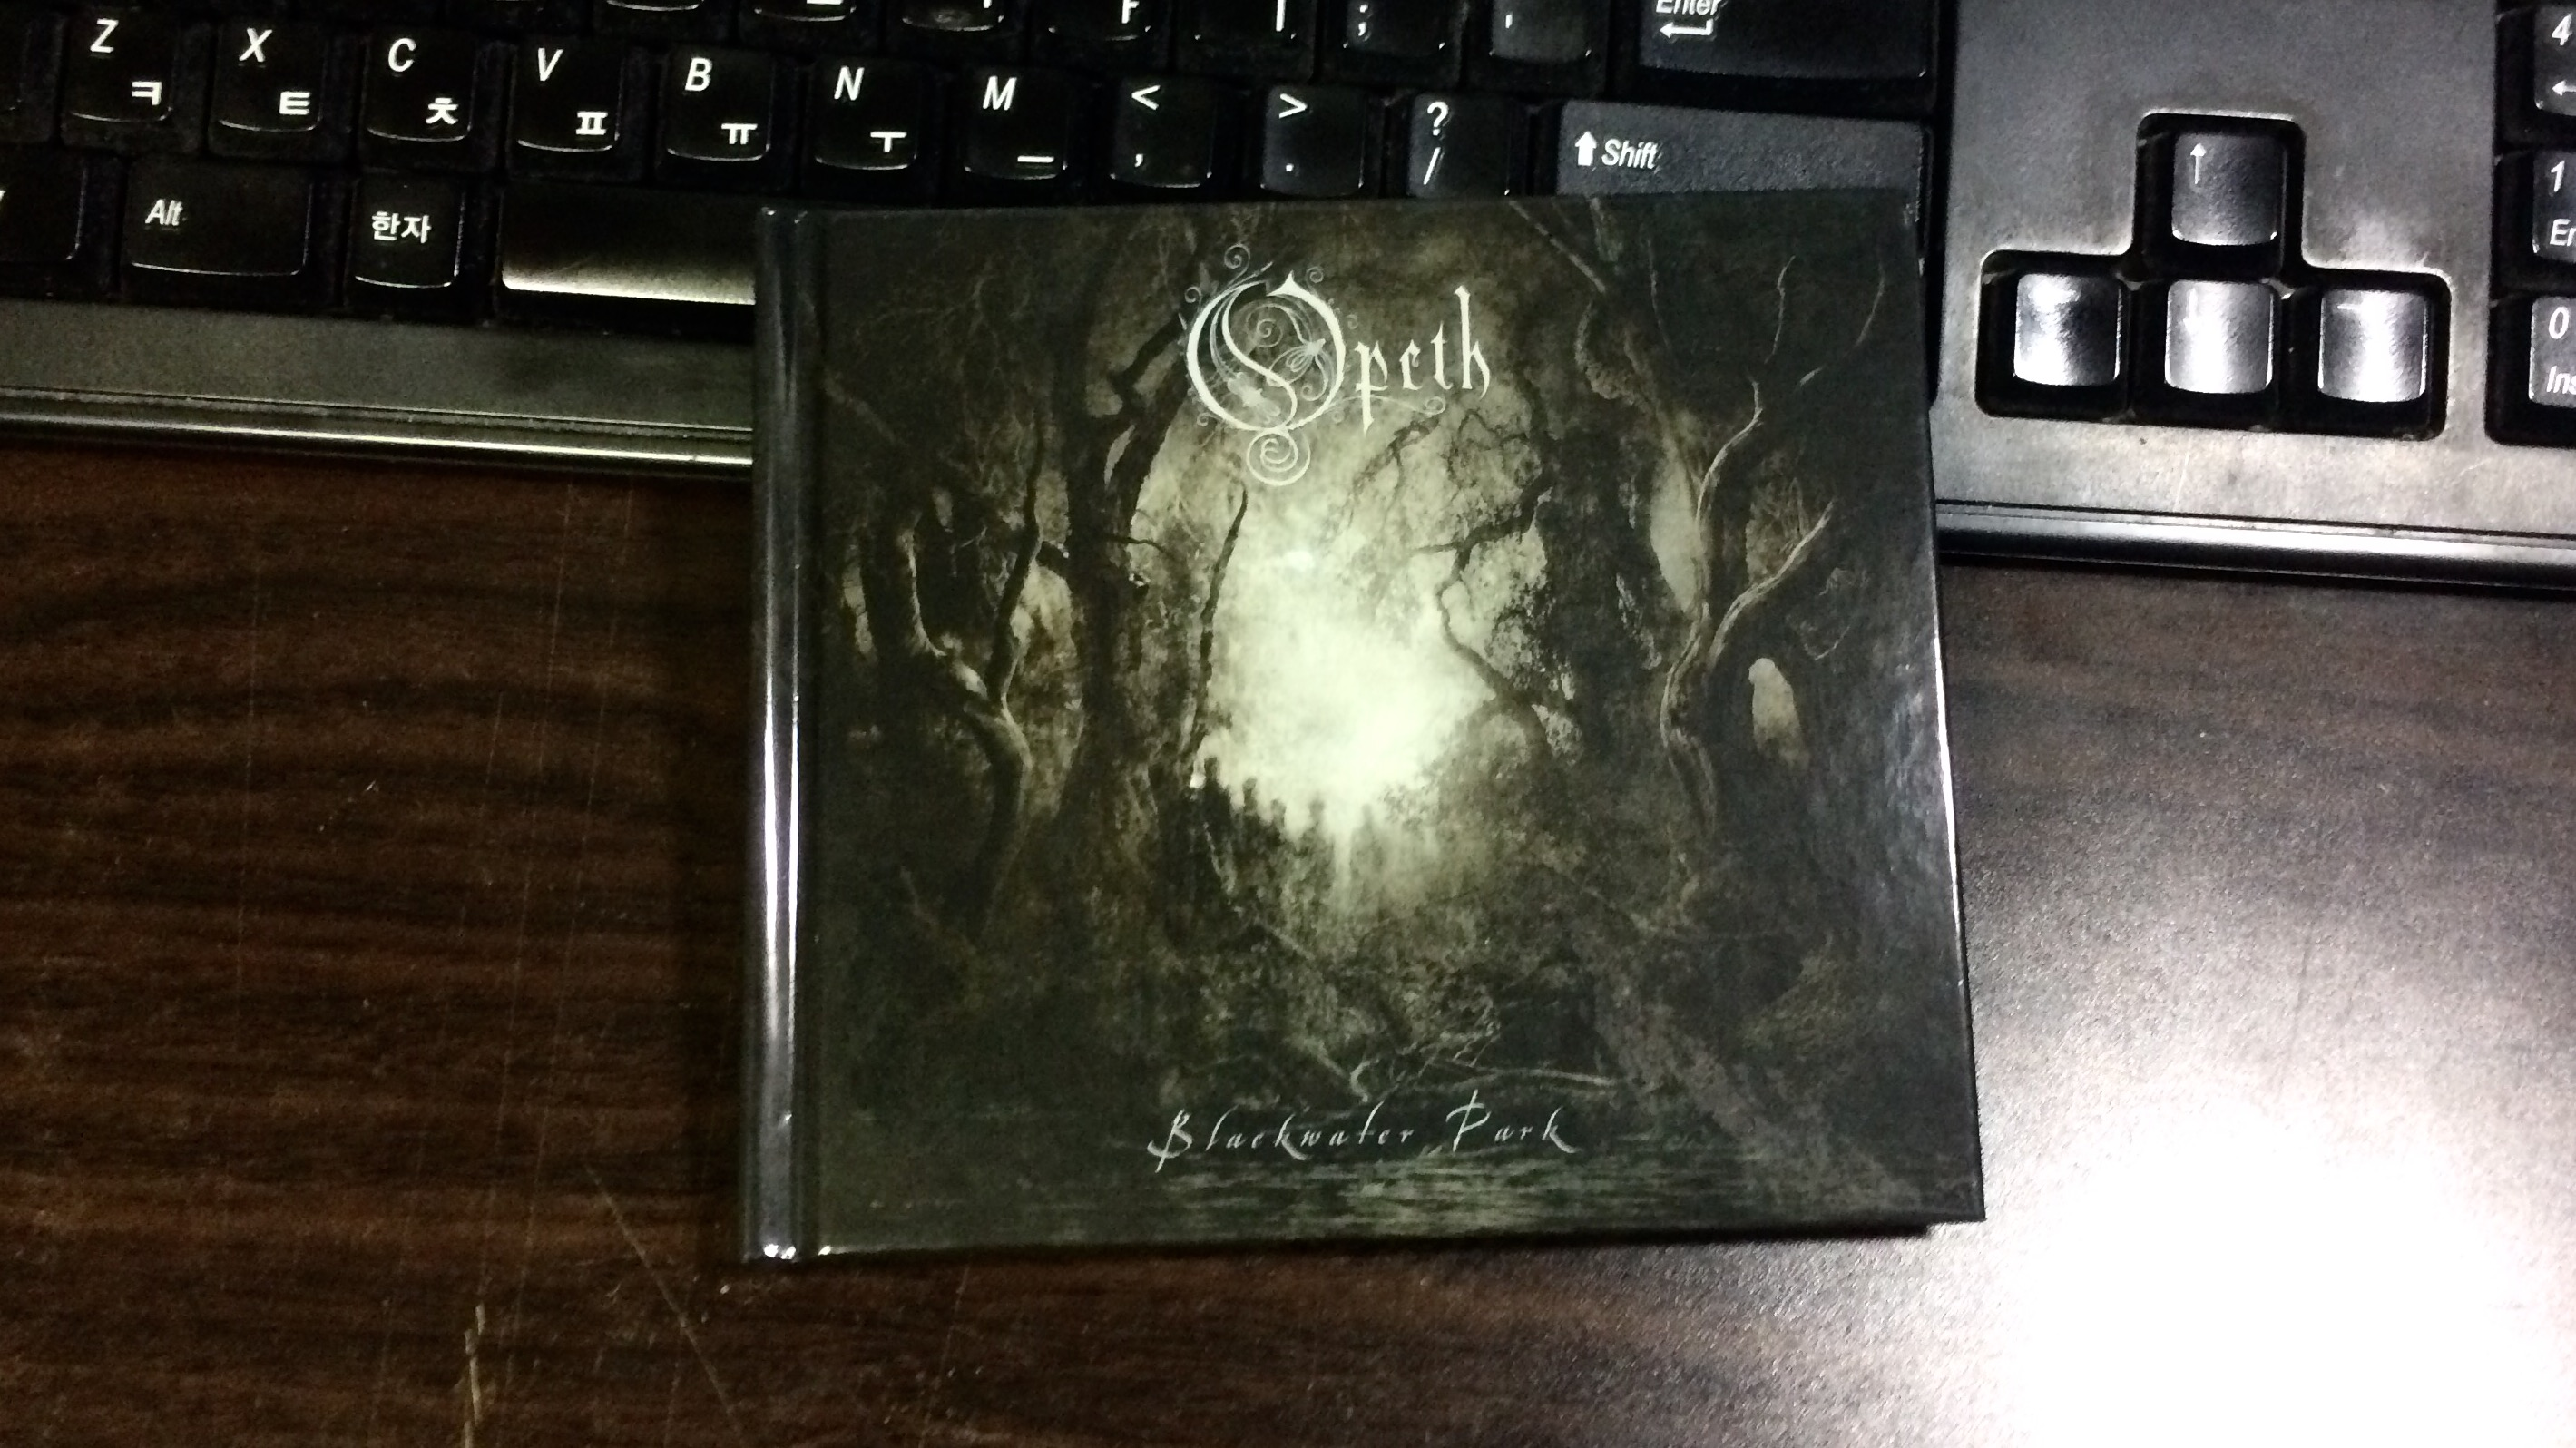 Blackwater Park - Opeth / 2001